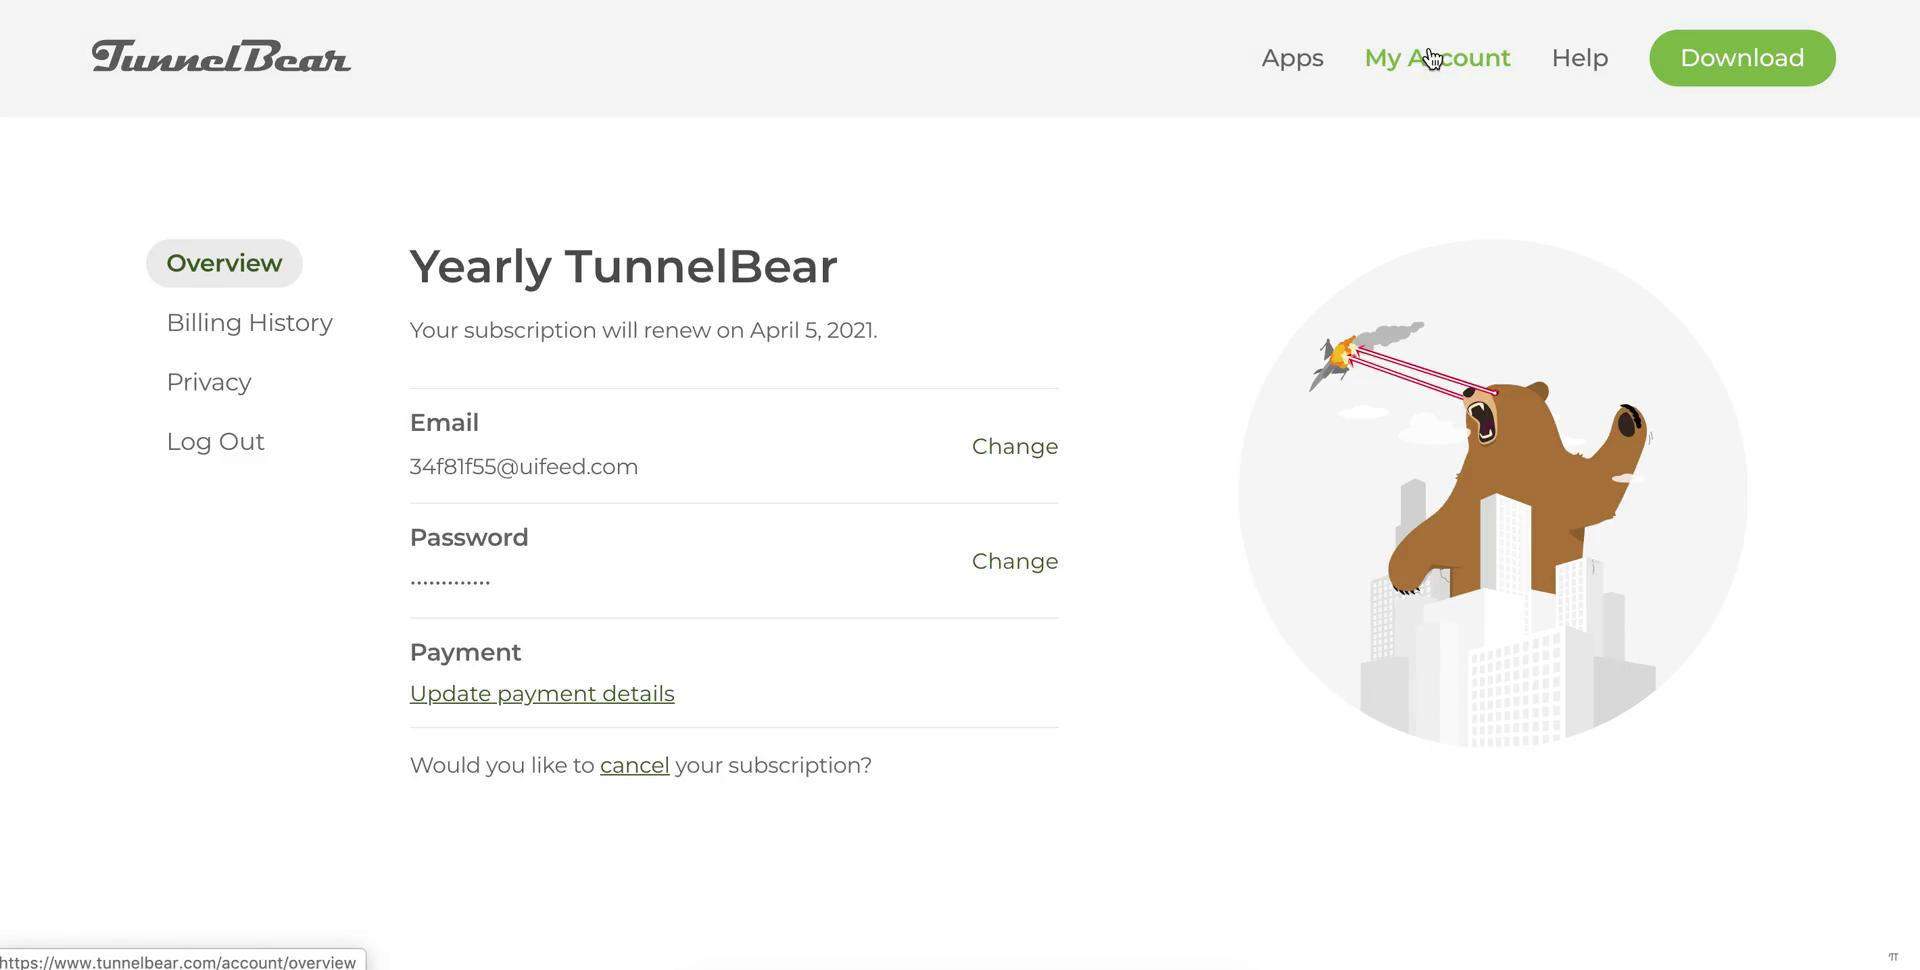 Screenshot of Account settings during Cancelling your subscription on TunnelBear user flow